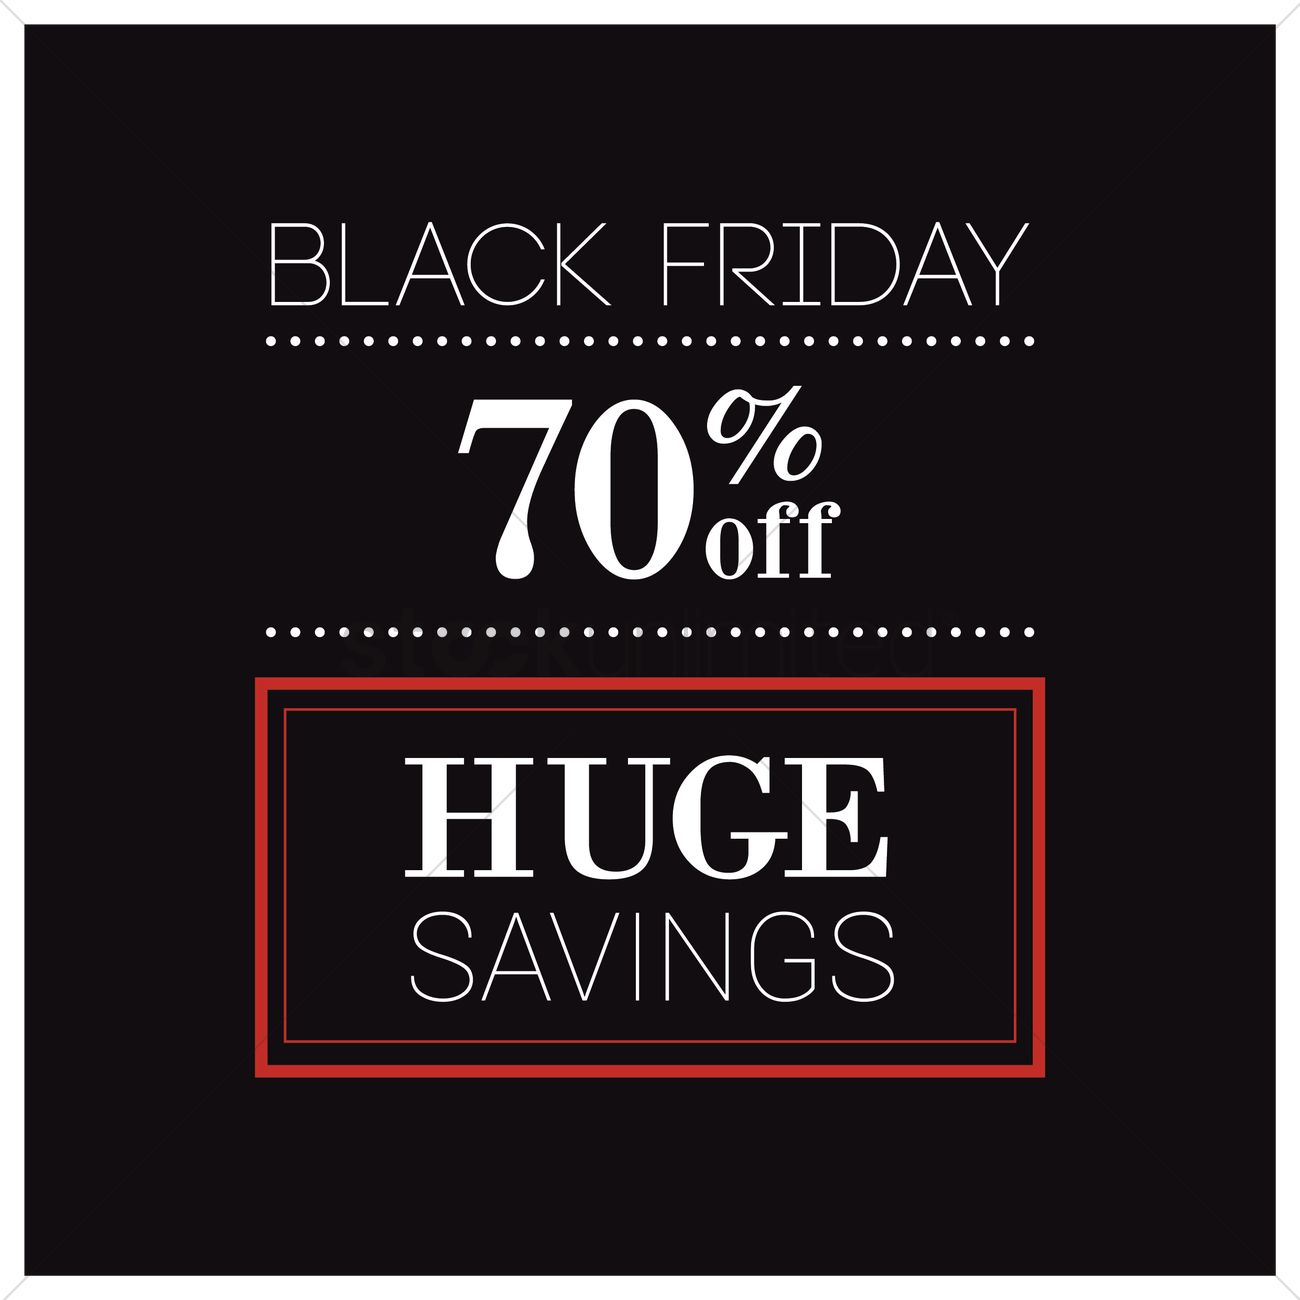 Black friday sale wallpaper Vector Image   1583531 StockUnlimited 1300x1300